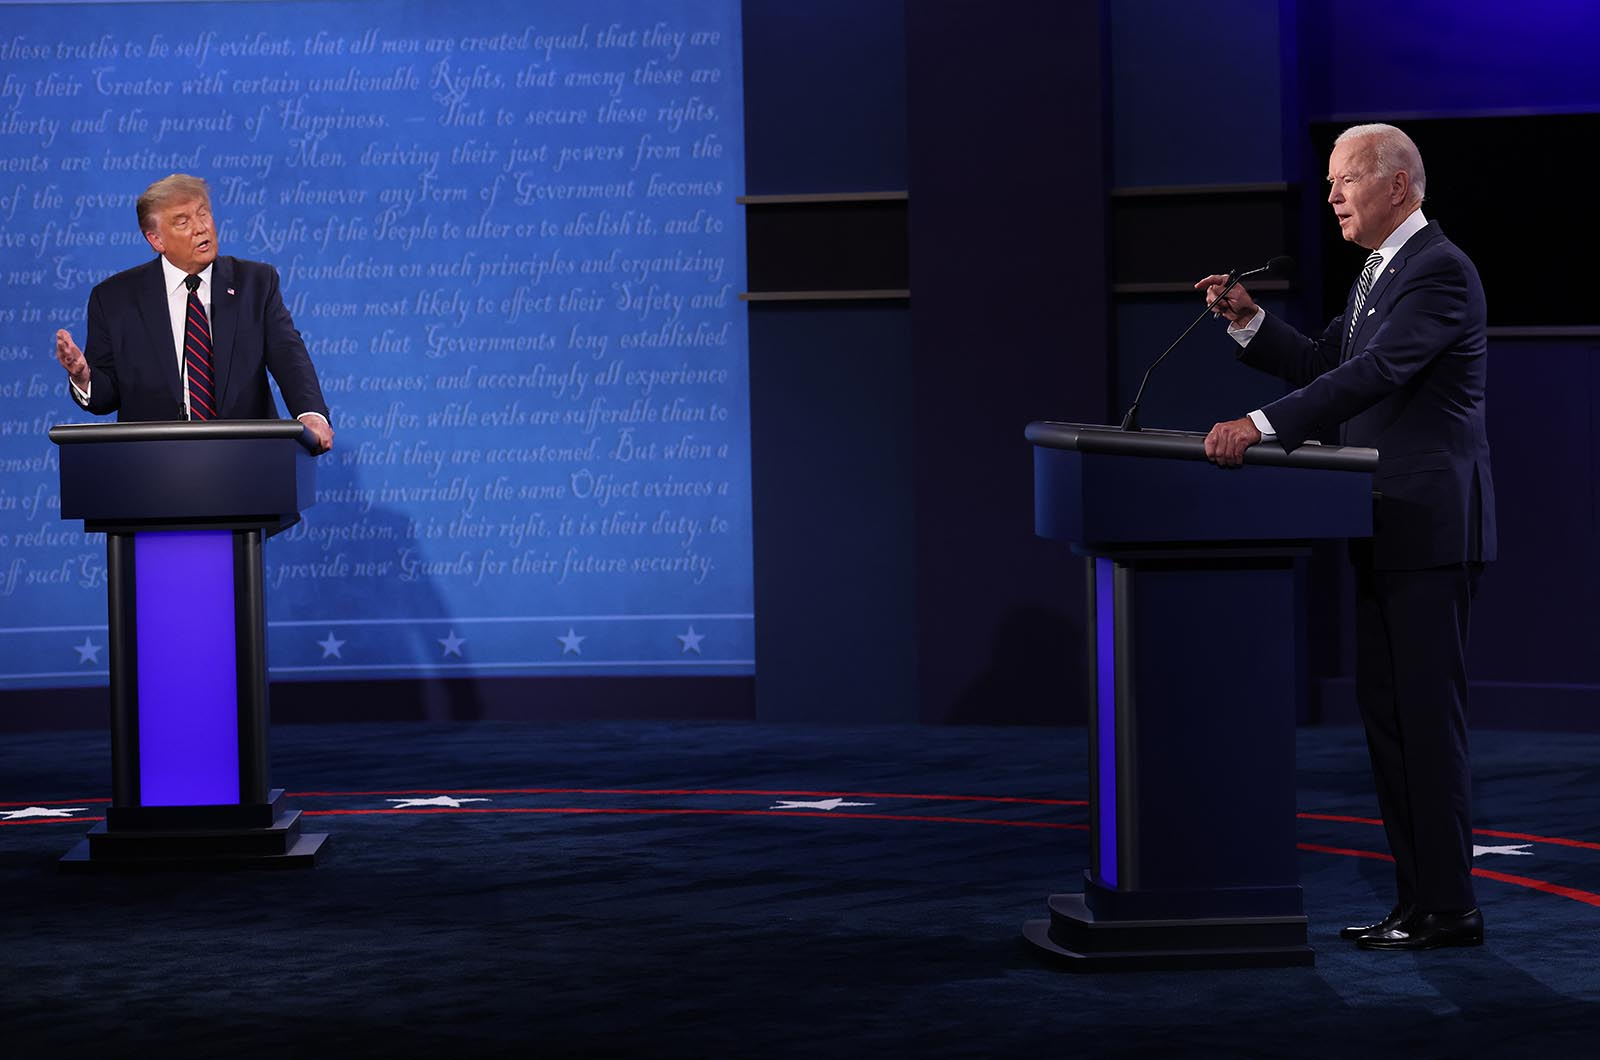 President Donald Trump and Democratic presidential nominee Joe Biden participate in the first presidential debate at the Health Education Campus of Case Western Reserve University on September 29 in Cleveland, Ohio.